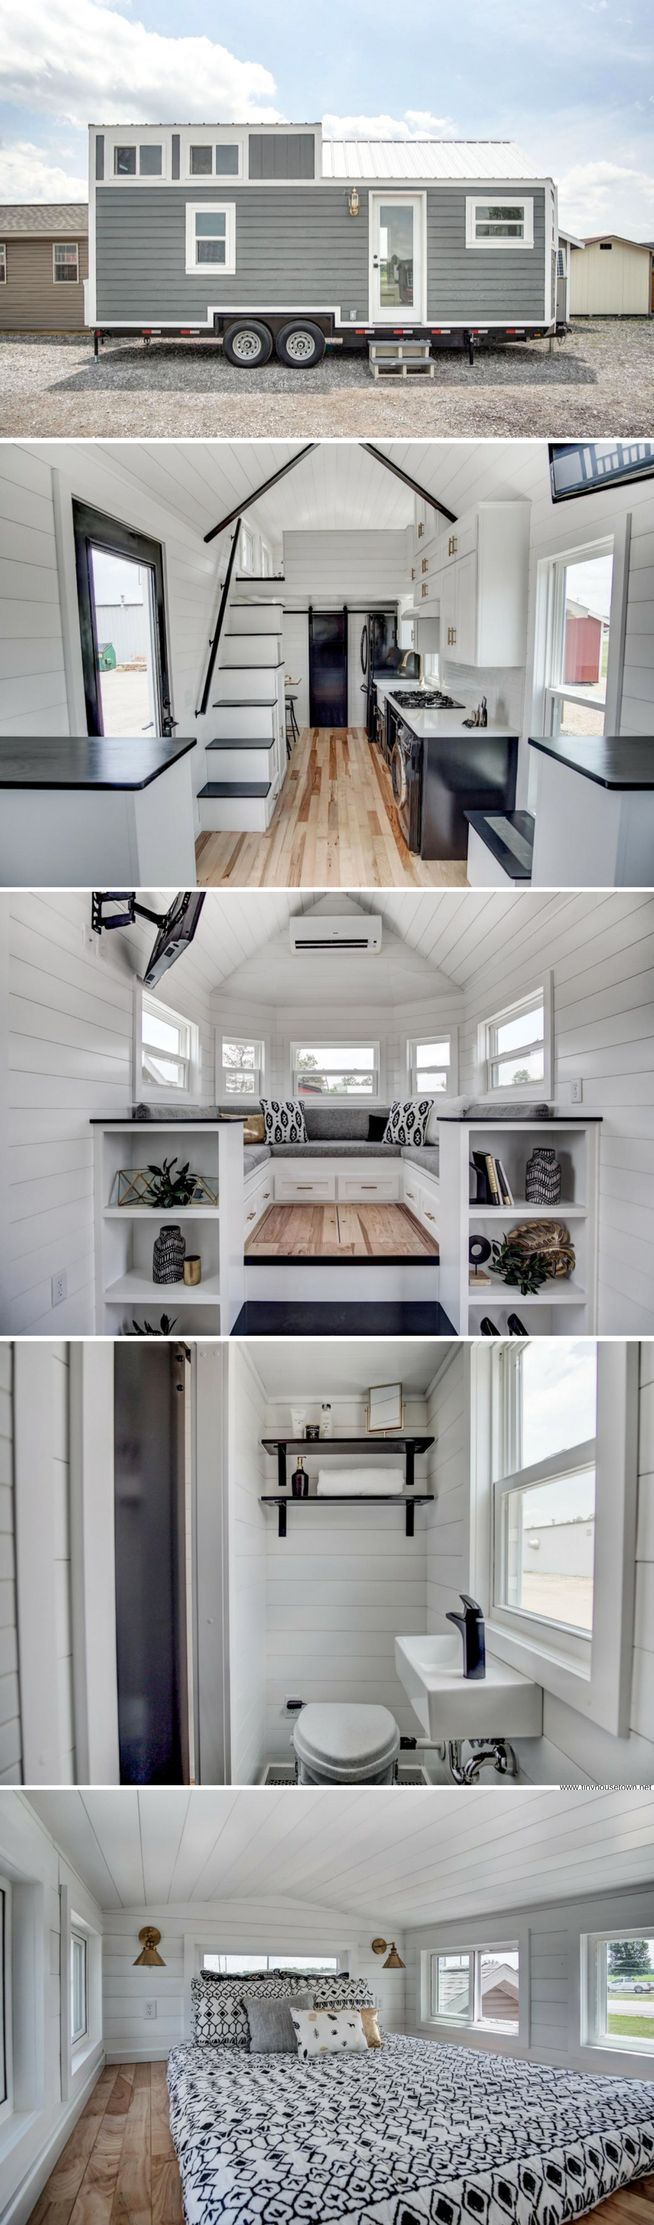 The Kokosing 2 from Modern Tiny Living (256 sq ft)